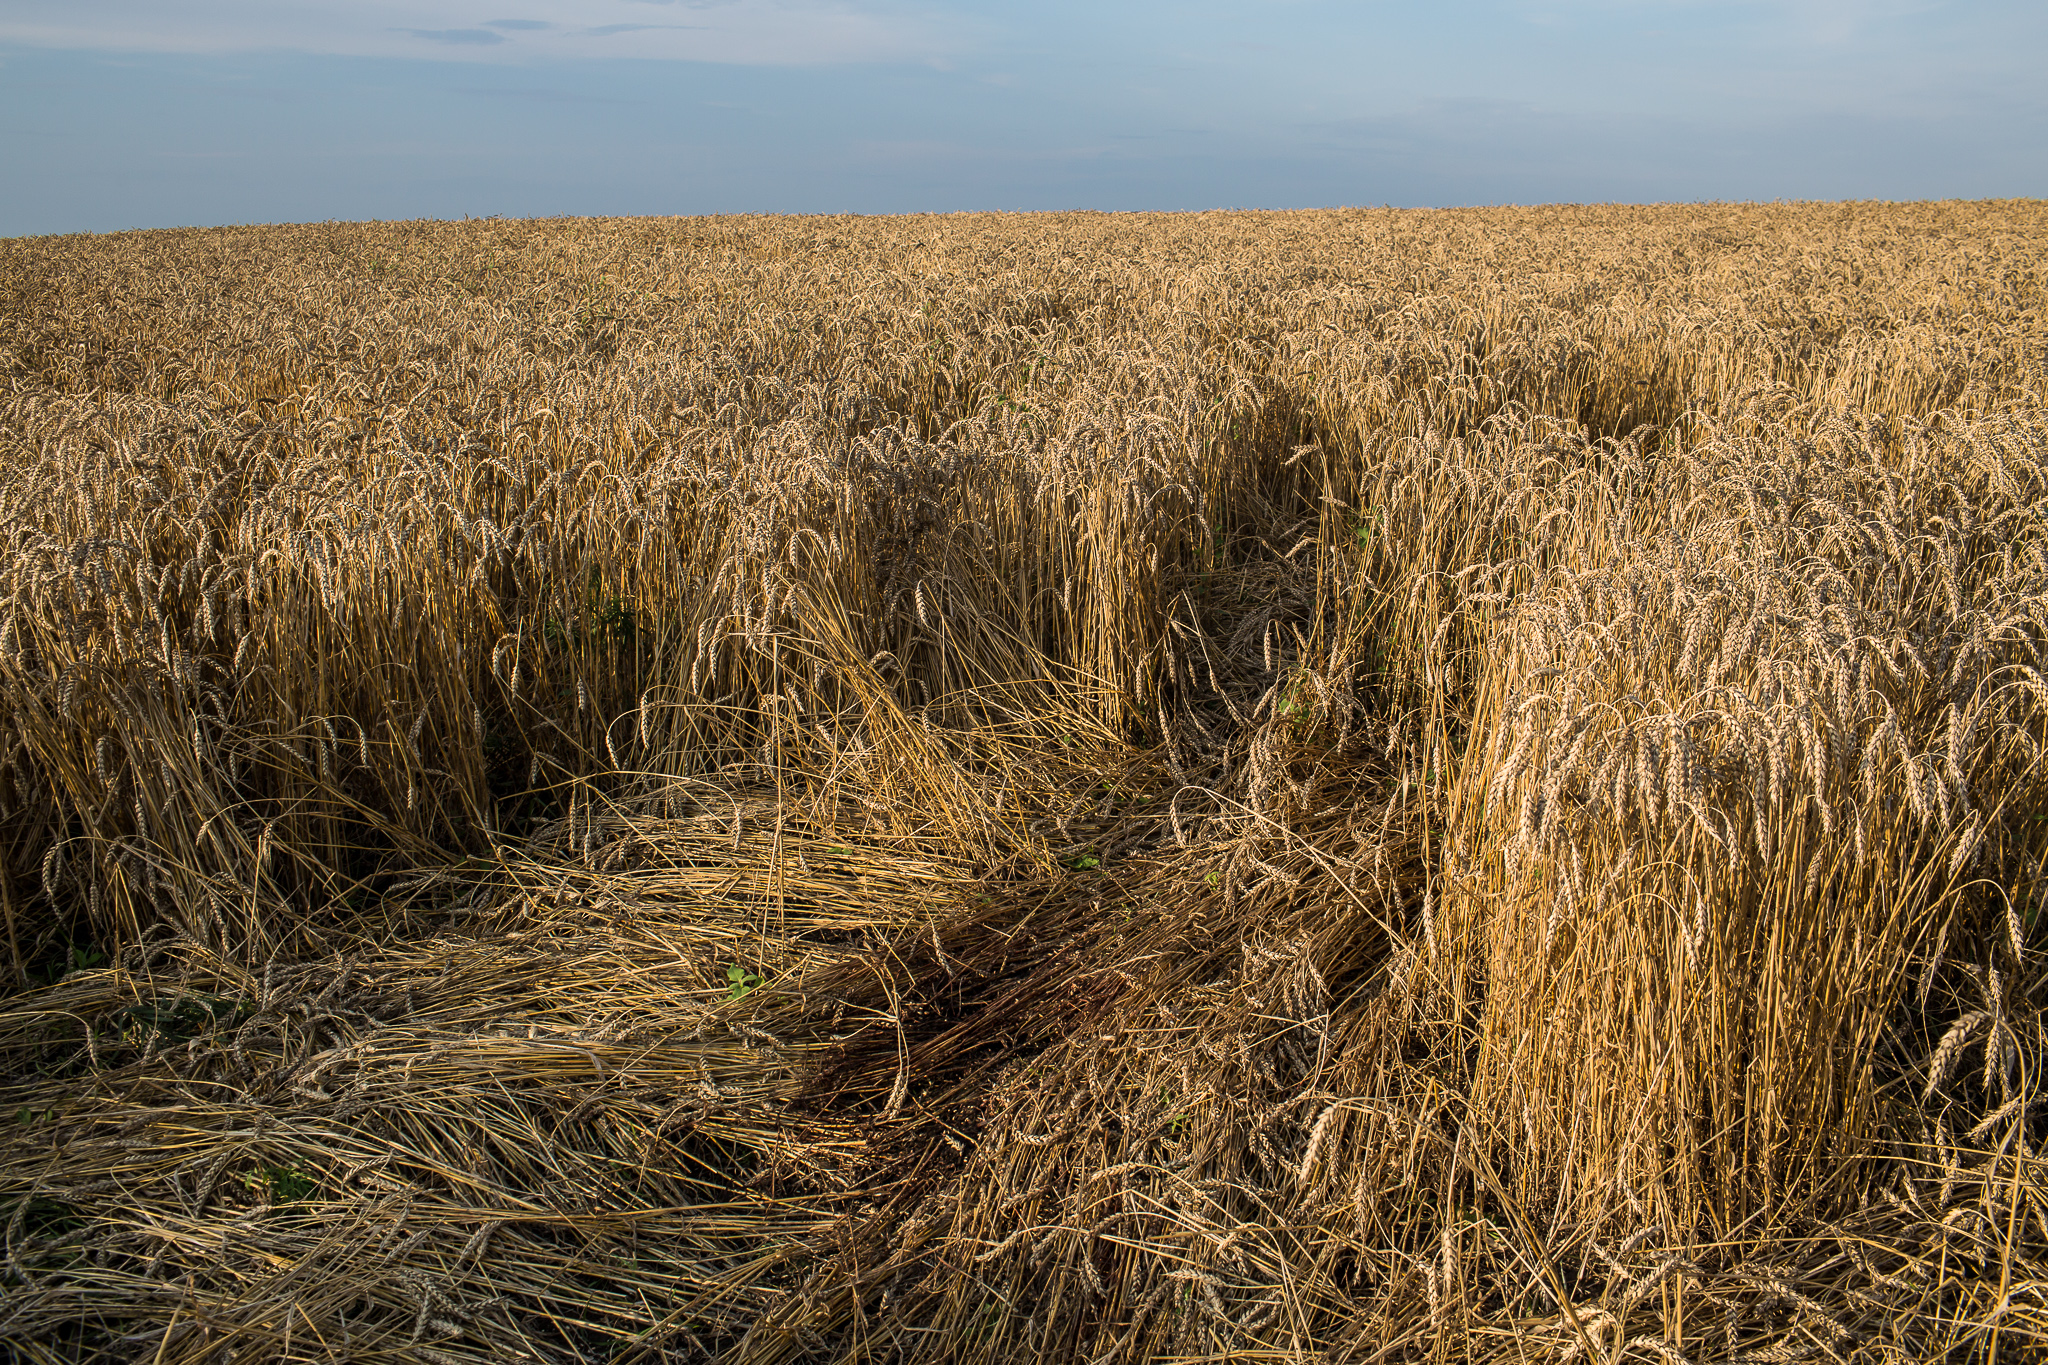 Blood stains the spot in a wheat field where the body of a passenger on Malaysia Airlines flight MH17 landed and was later removed on July 19, 2014 in Grabovo, Ukraine. The flight was traveling from Amsterdam to Kuala Lumpur when it crashed killing all 298 on board including 80 children. The aircraft was allegedly shot down by a missile and investigations continue over the perpetrators of the attack.